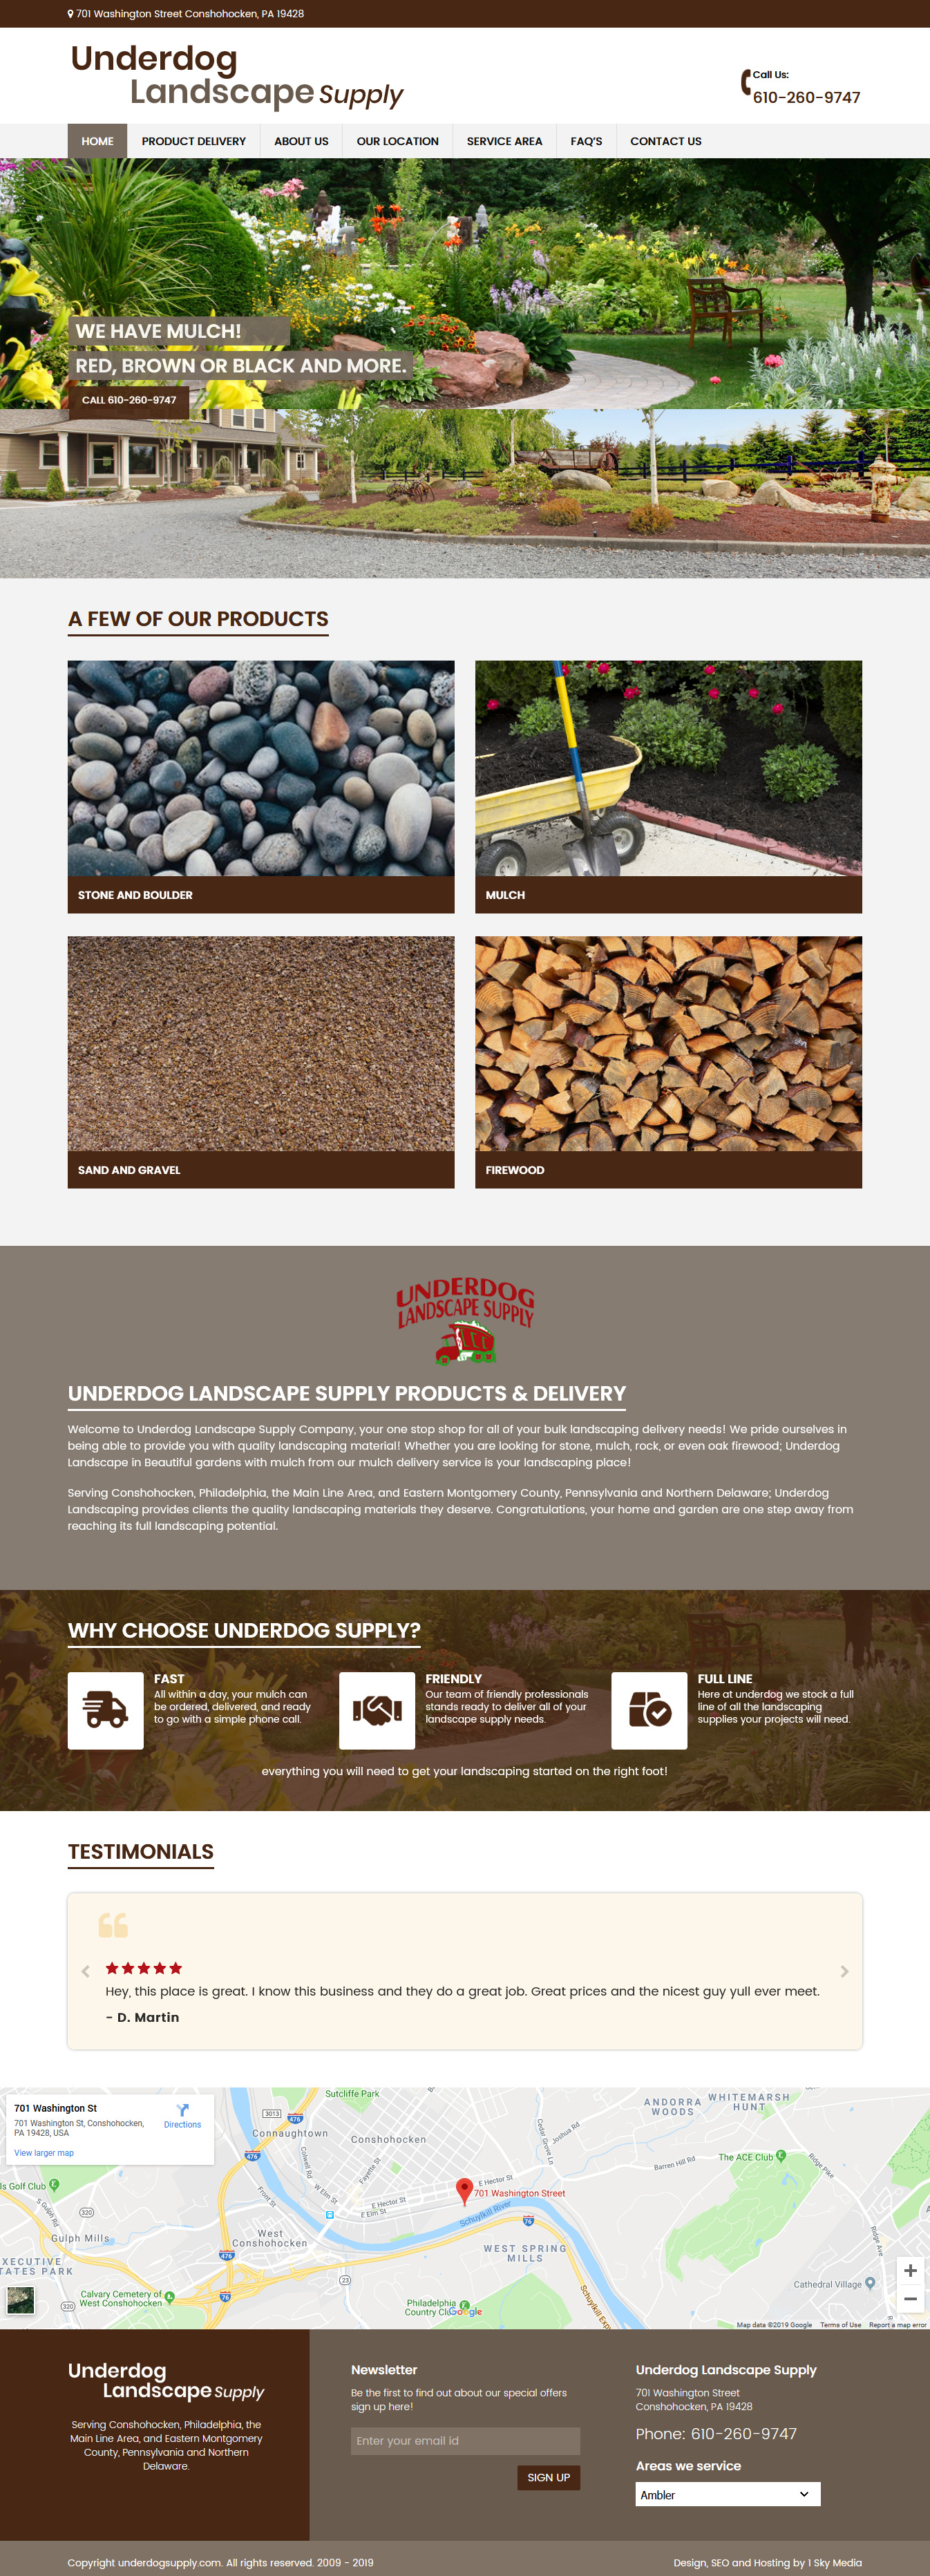 Underdog supply Landscape supply website design